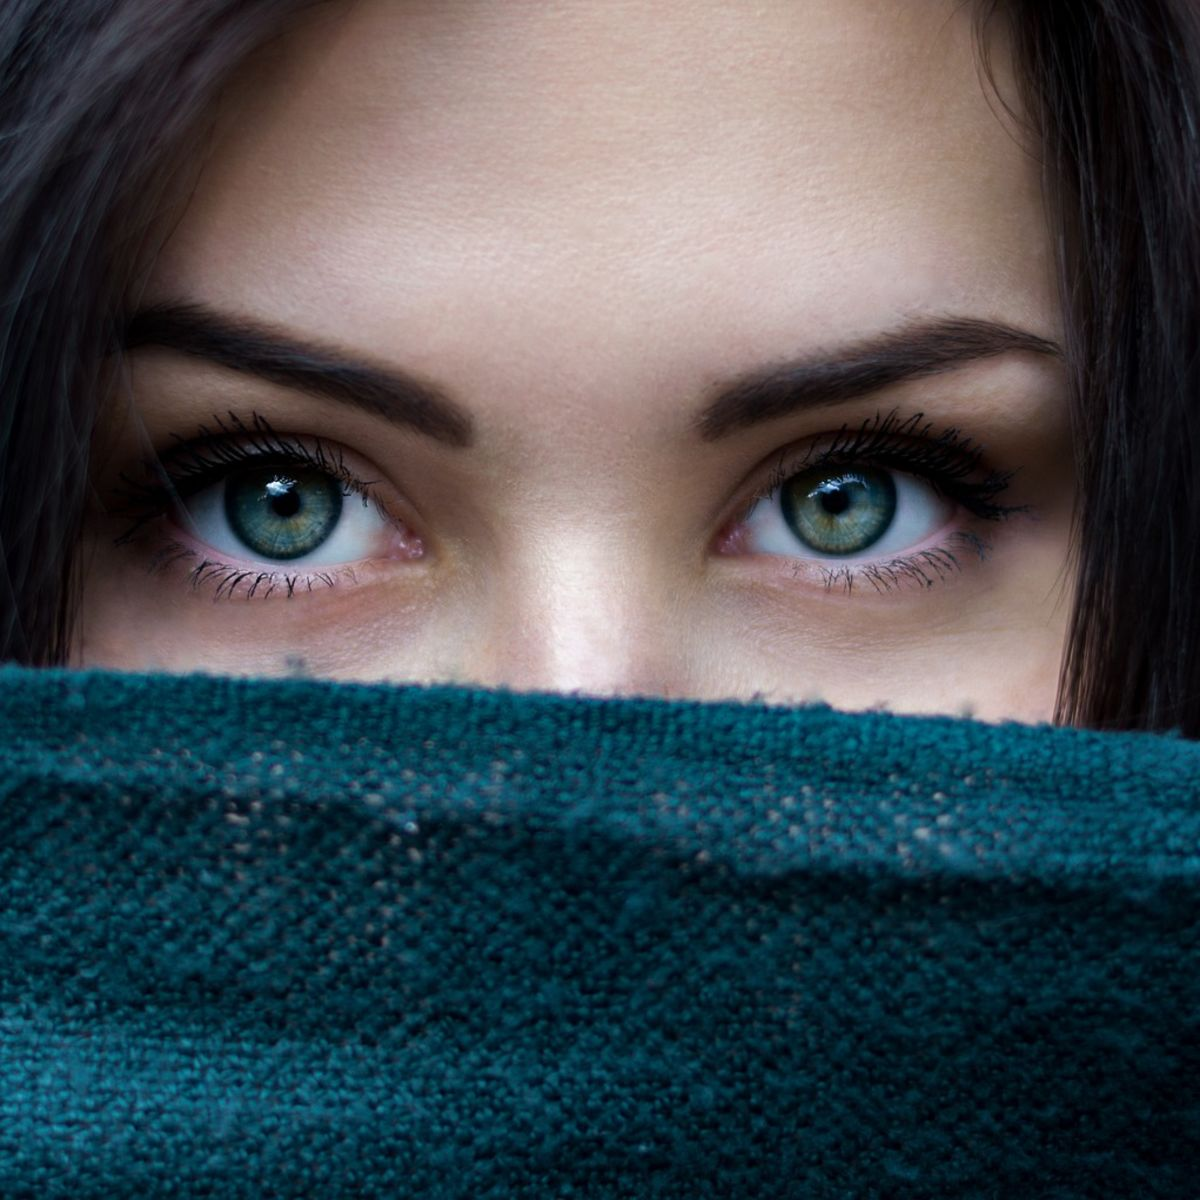 Beautiful and mysterious eyes